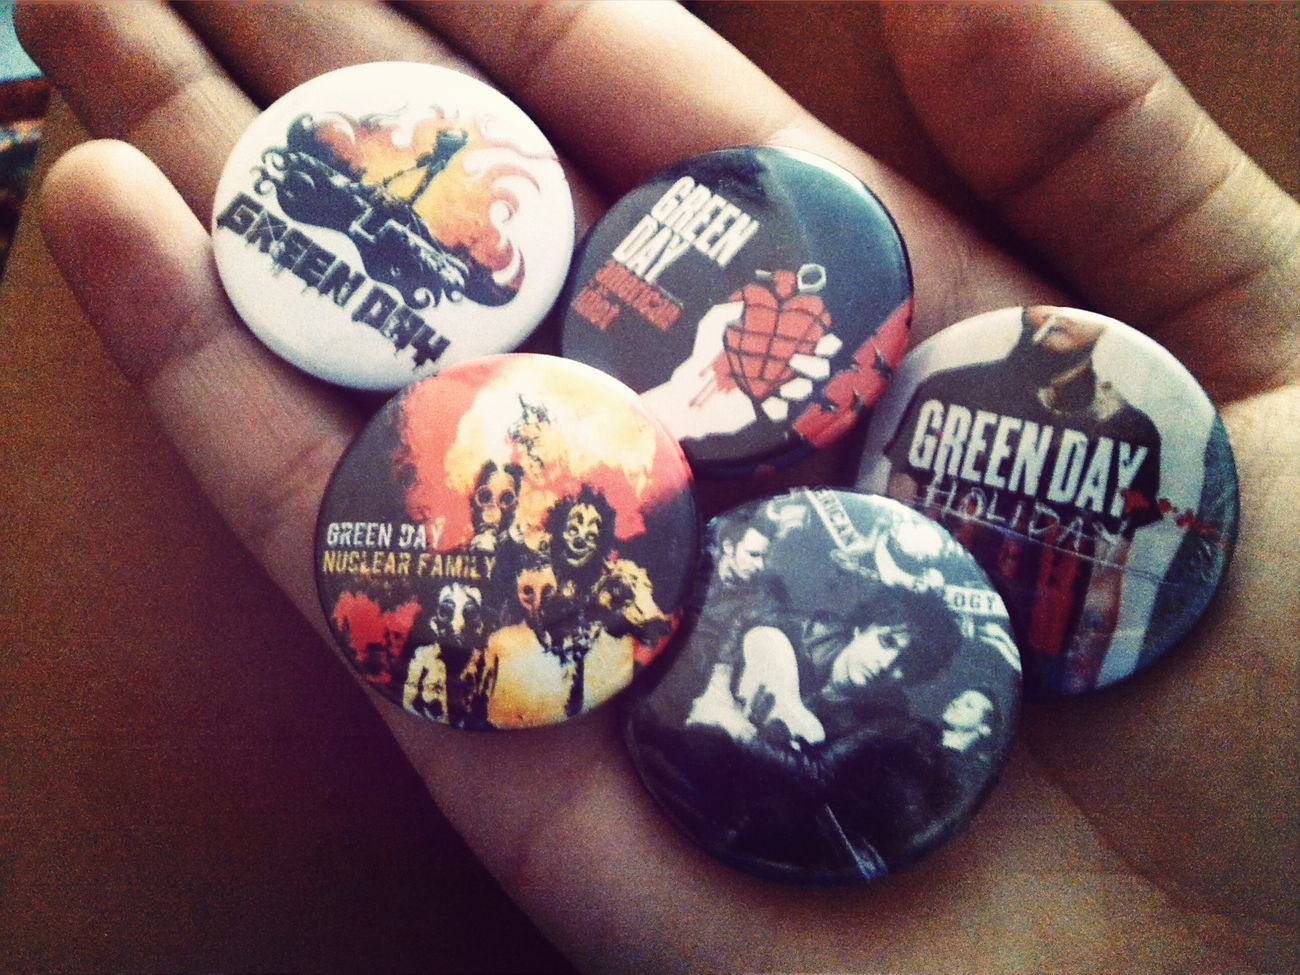 Green Day Band Merch